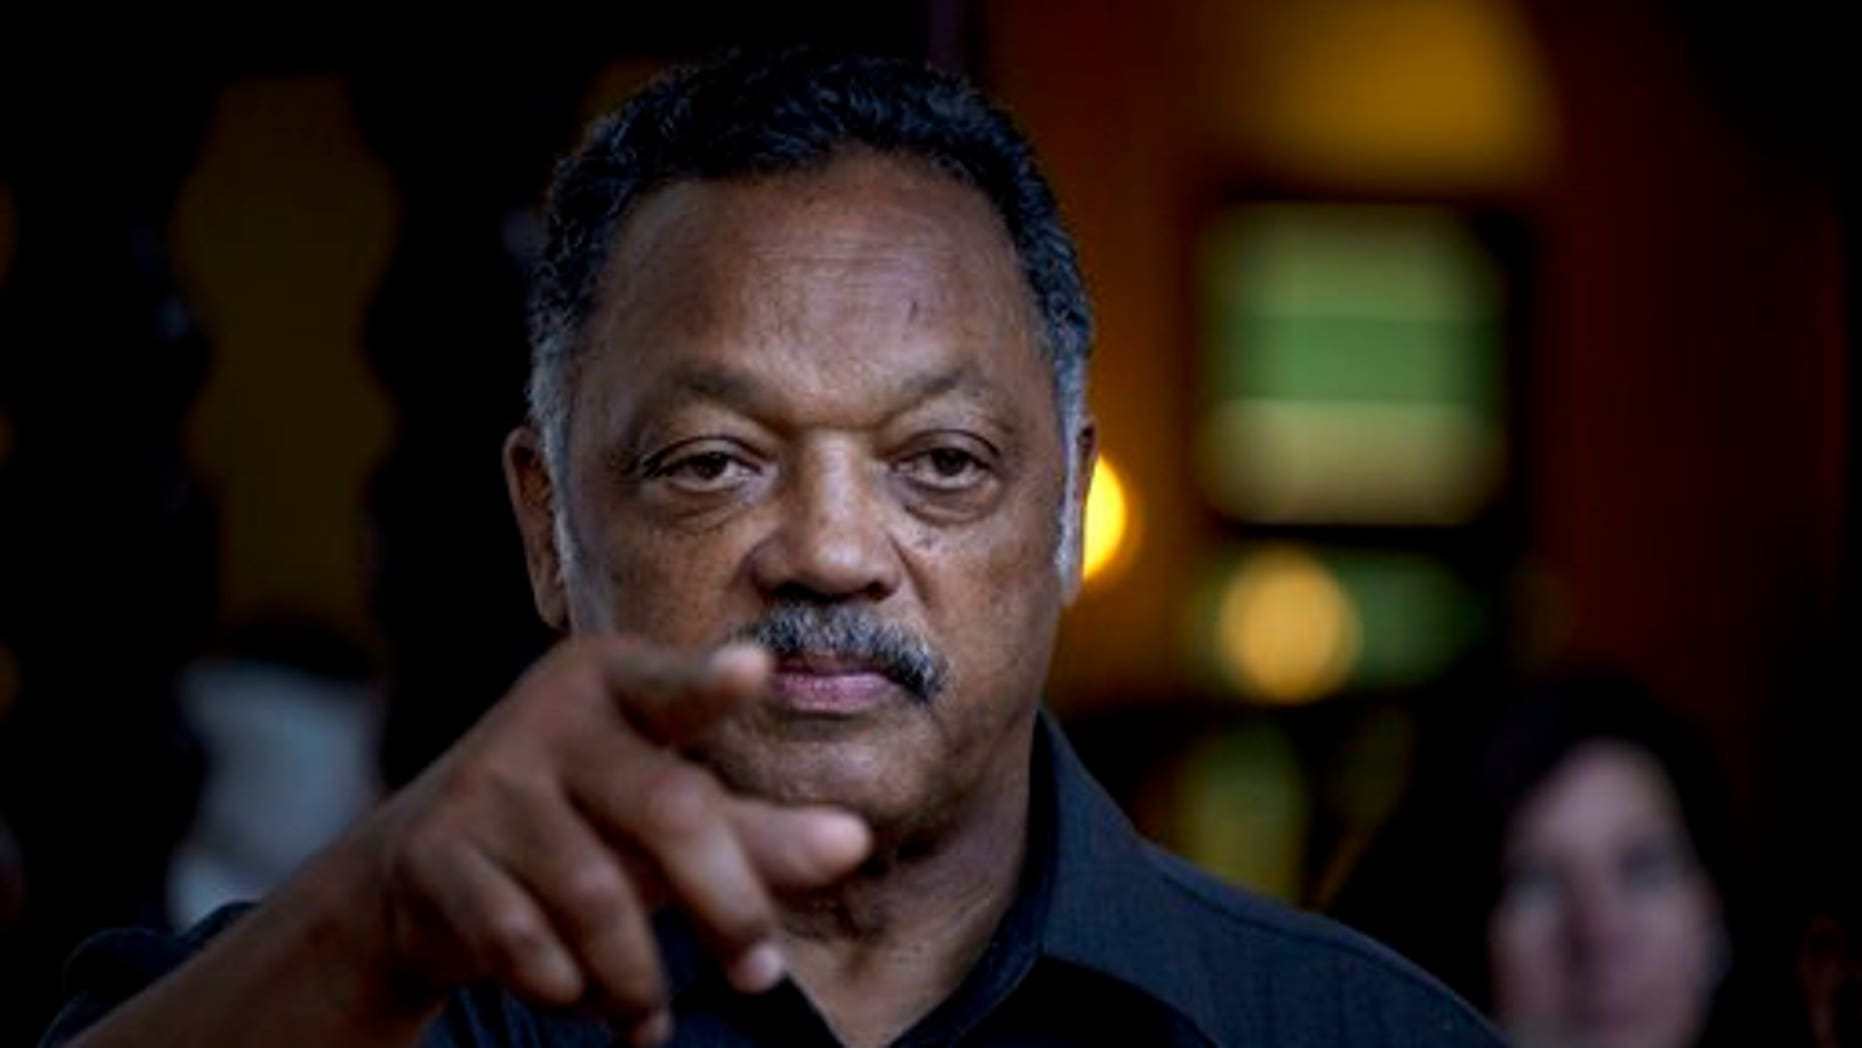 Rev. Jesse Jackson points to a reporter as he takes questions during an impromptu news conference at the Hotel Nacional in Havana, Cuba, Saturday, Sept. 28, 2013. Jackson accepted a request on Saturday by the Revolutionary Armed Forces of Colombia, or FARC, to oversee the release of a U.S. citizen Kevin Scott Sutay kidnapped in June. Jackson says he is in town for talks with religious leaders about their concerns for the poor, and peaceful relations between Cuba, the United States and the rest of the Caribbean. (AP Photo/Ramon Espinosa)